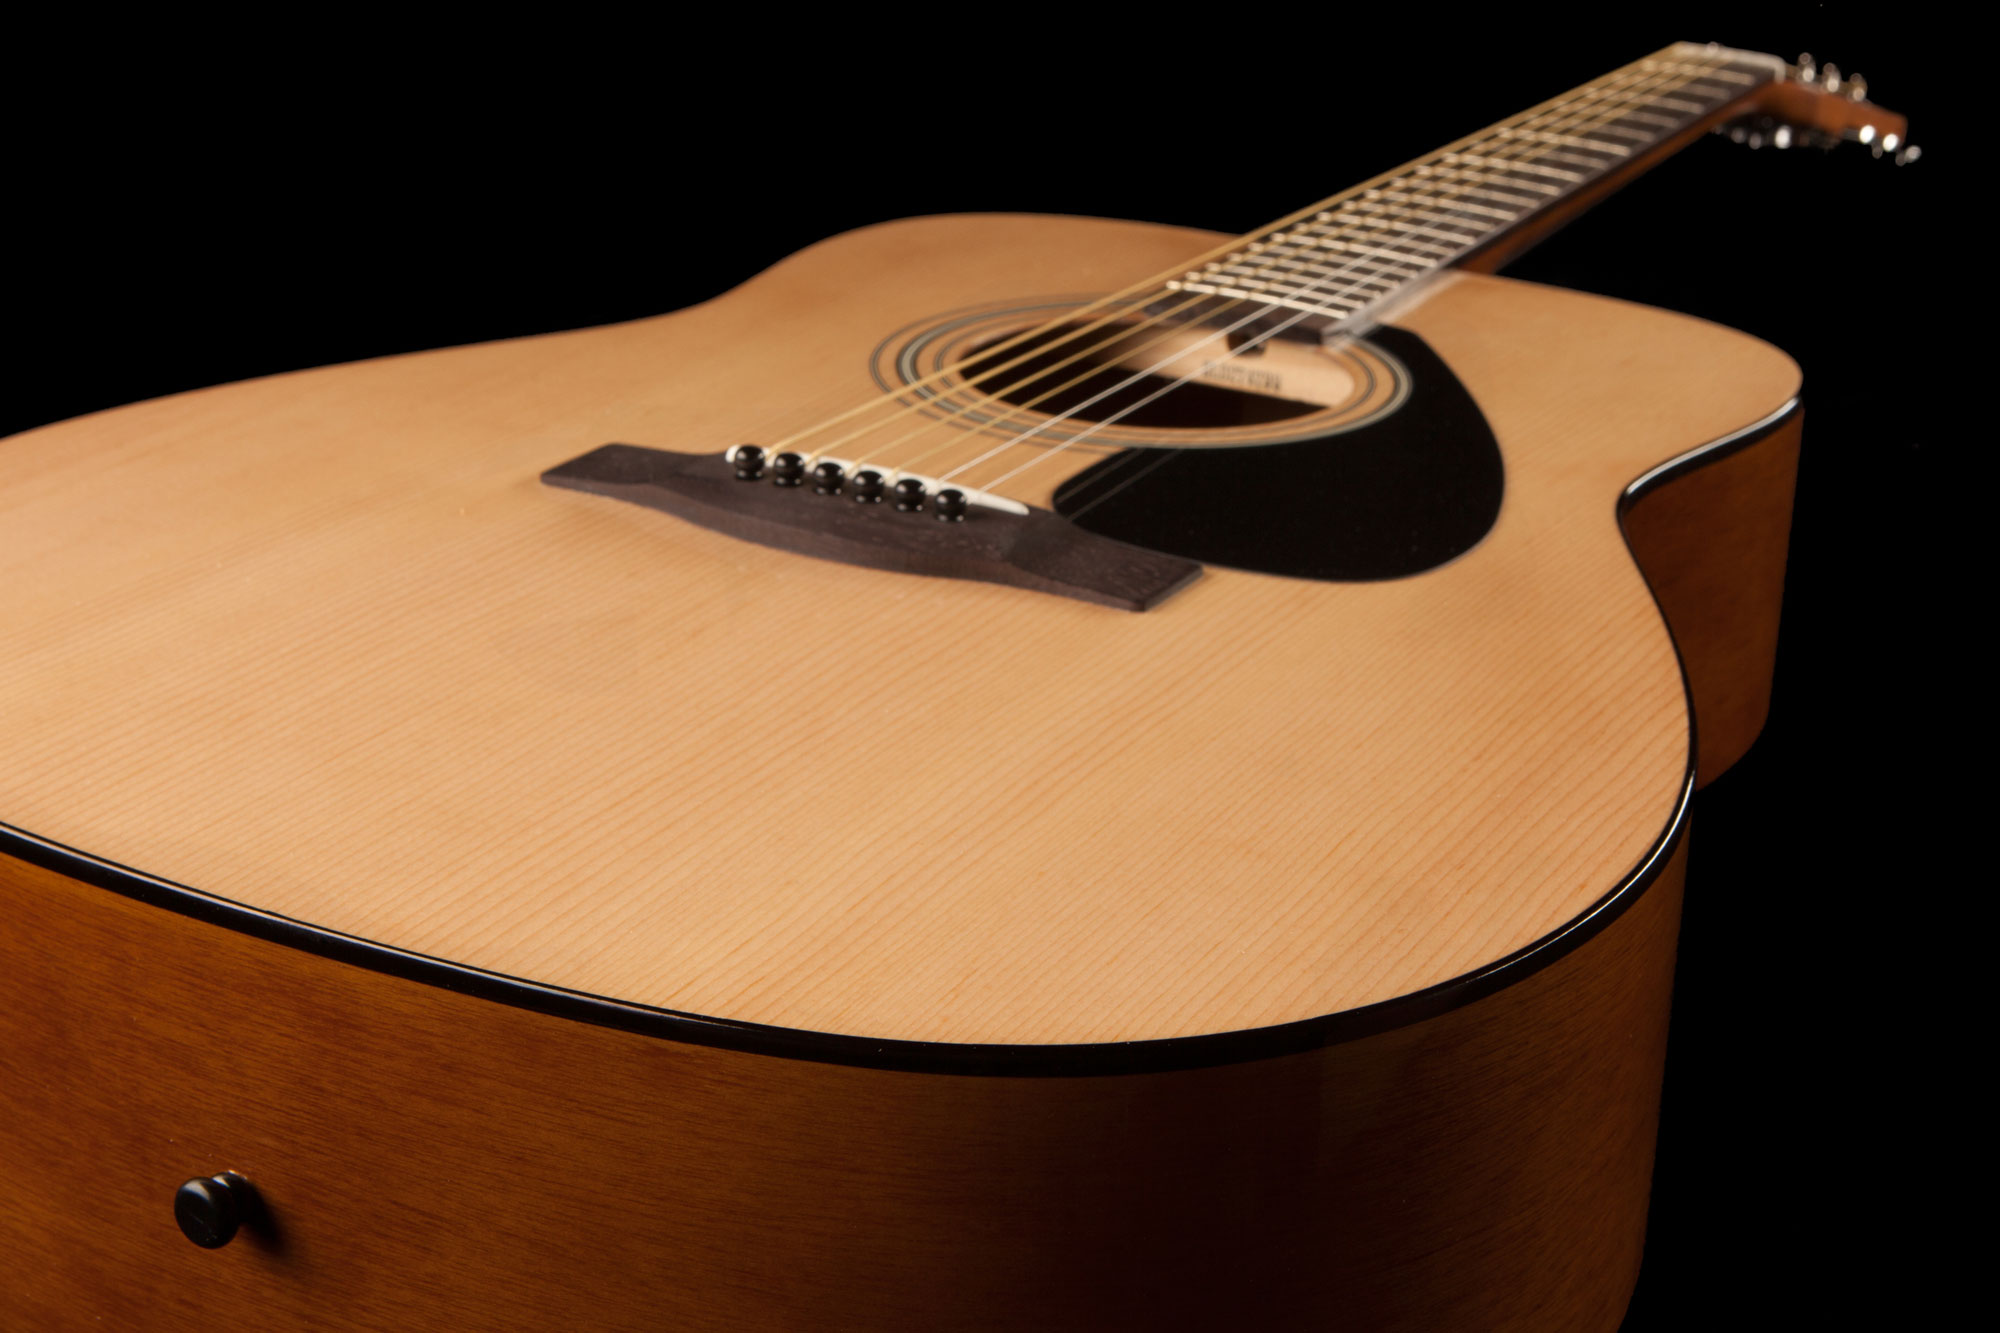 F310 Acoustic Guitar in Natural finish